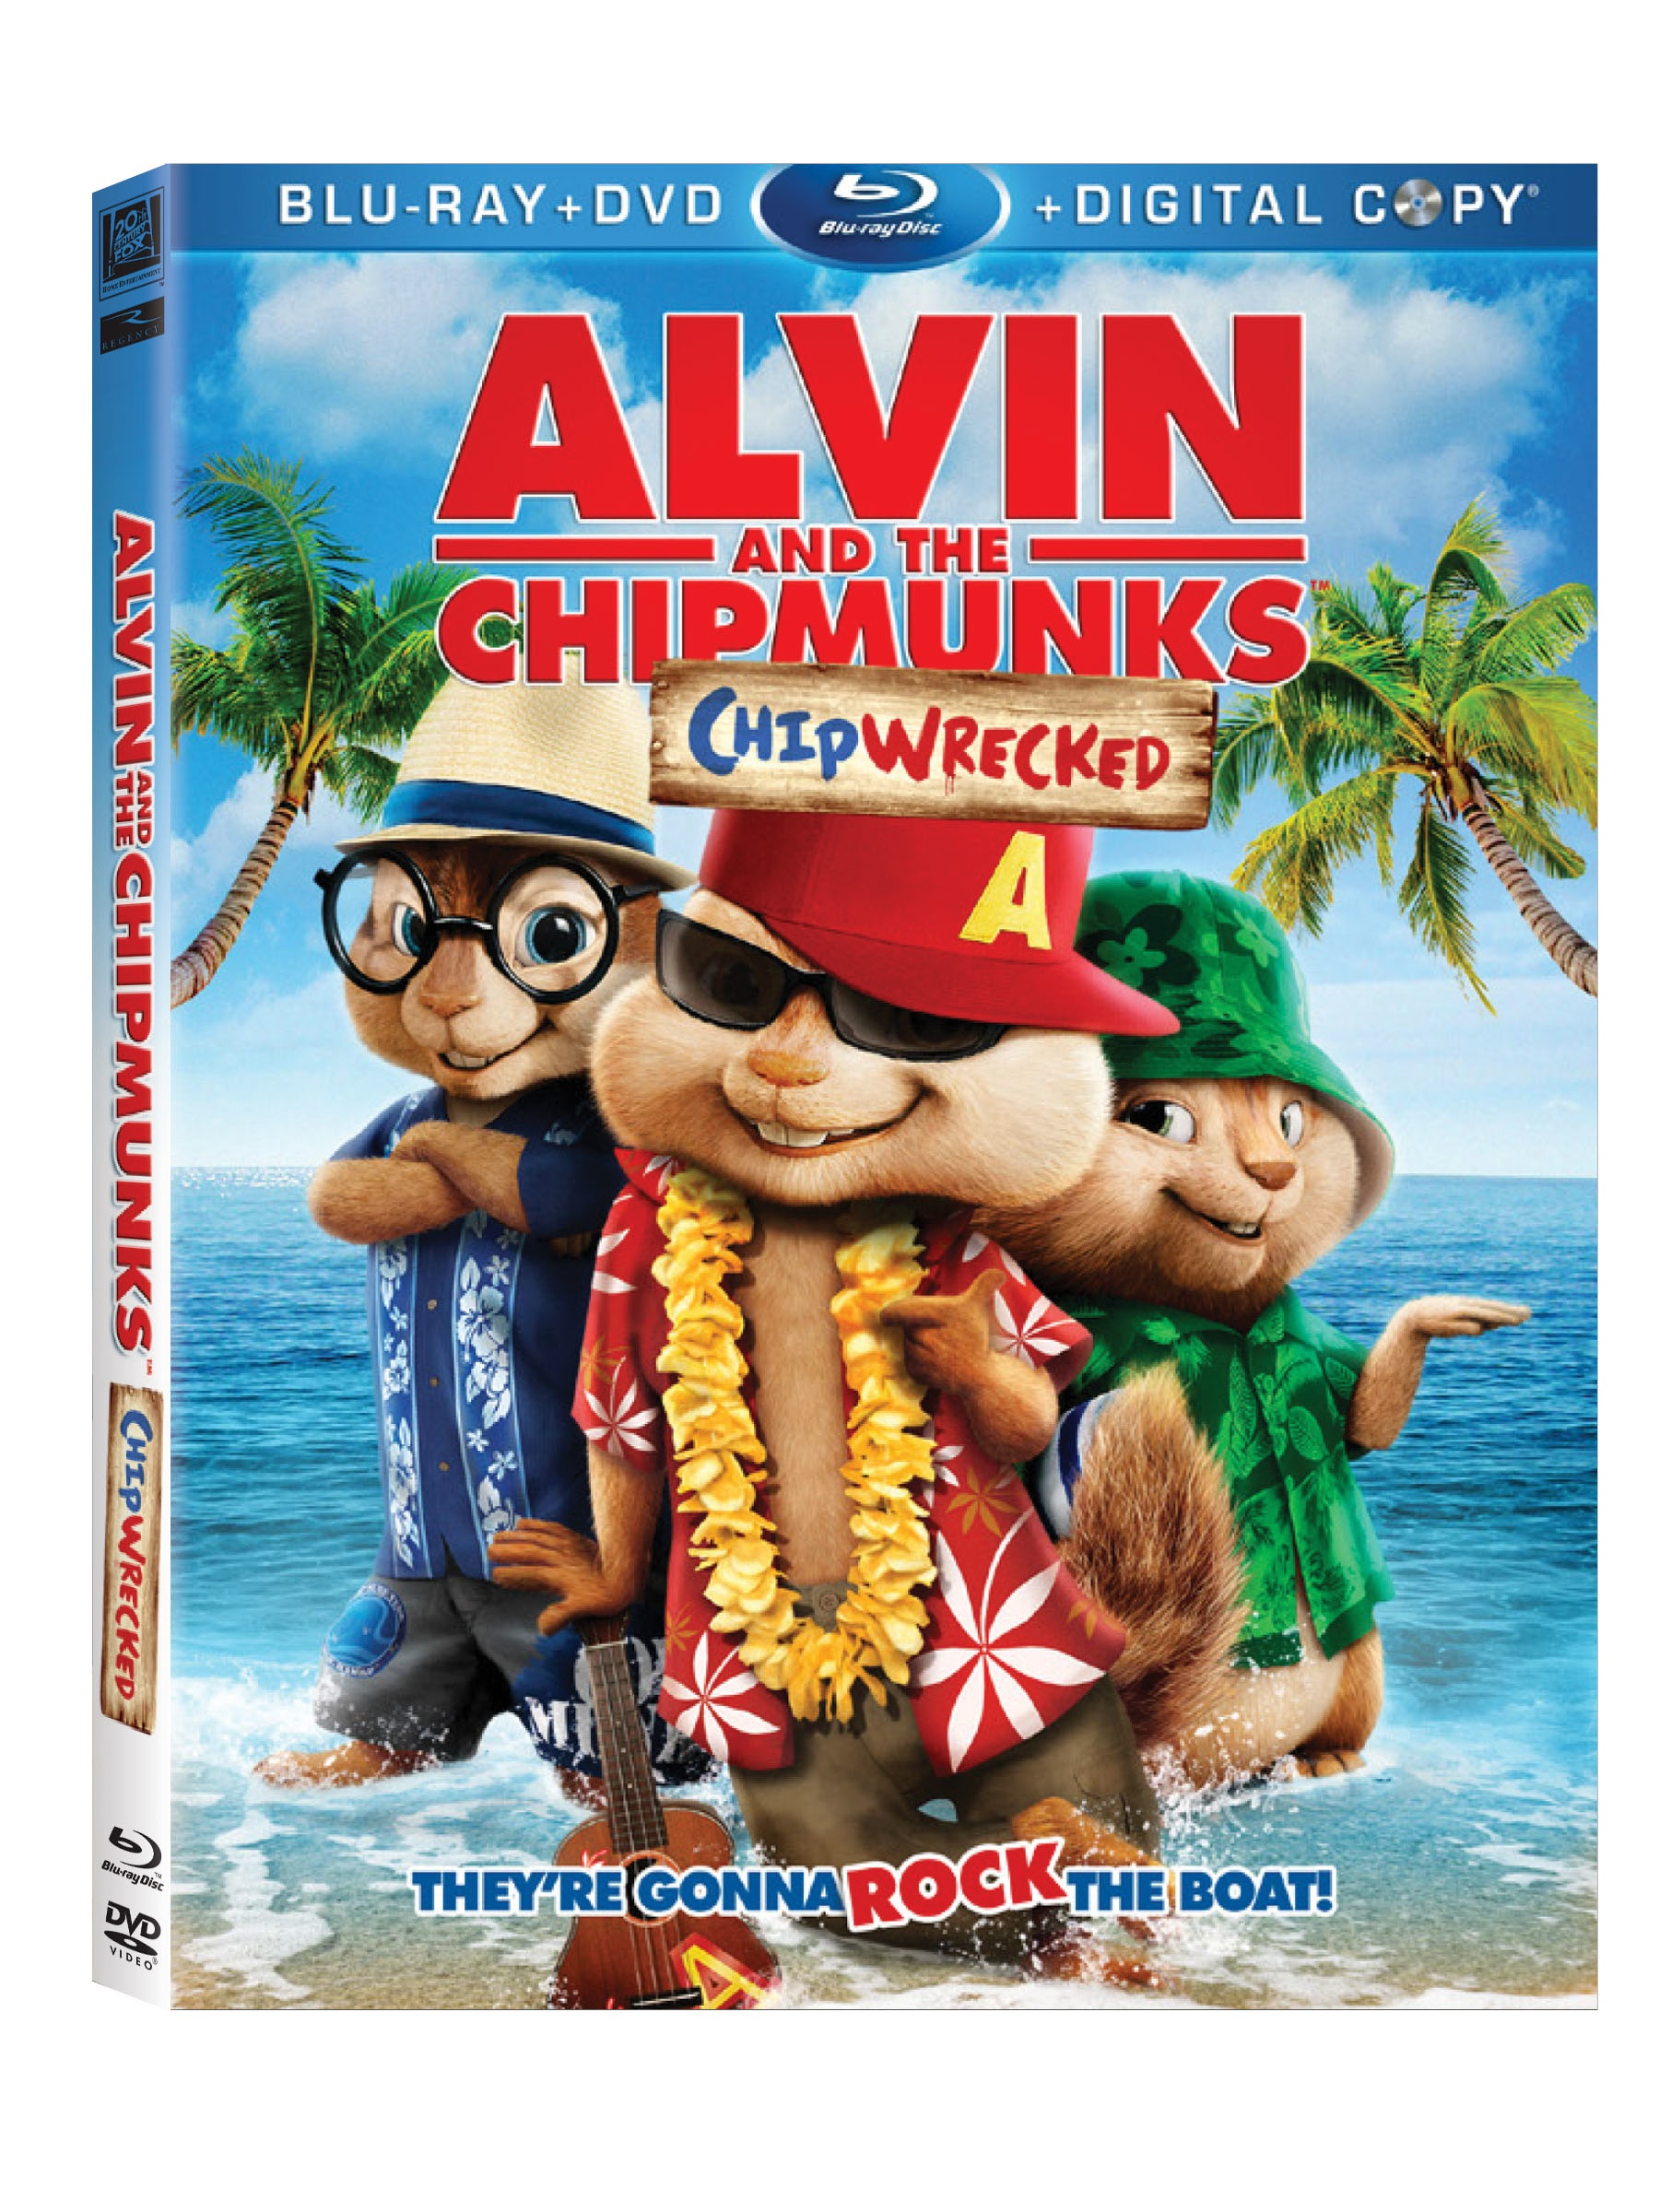 Alvin The Chipmunks: Chipwrecked